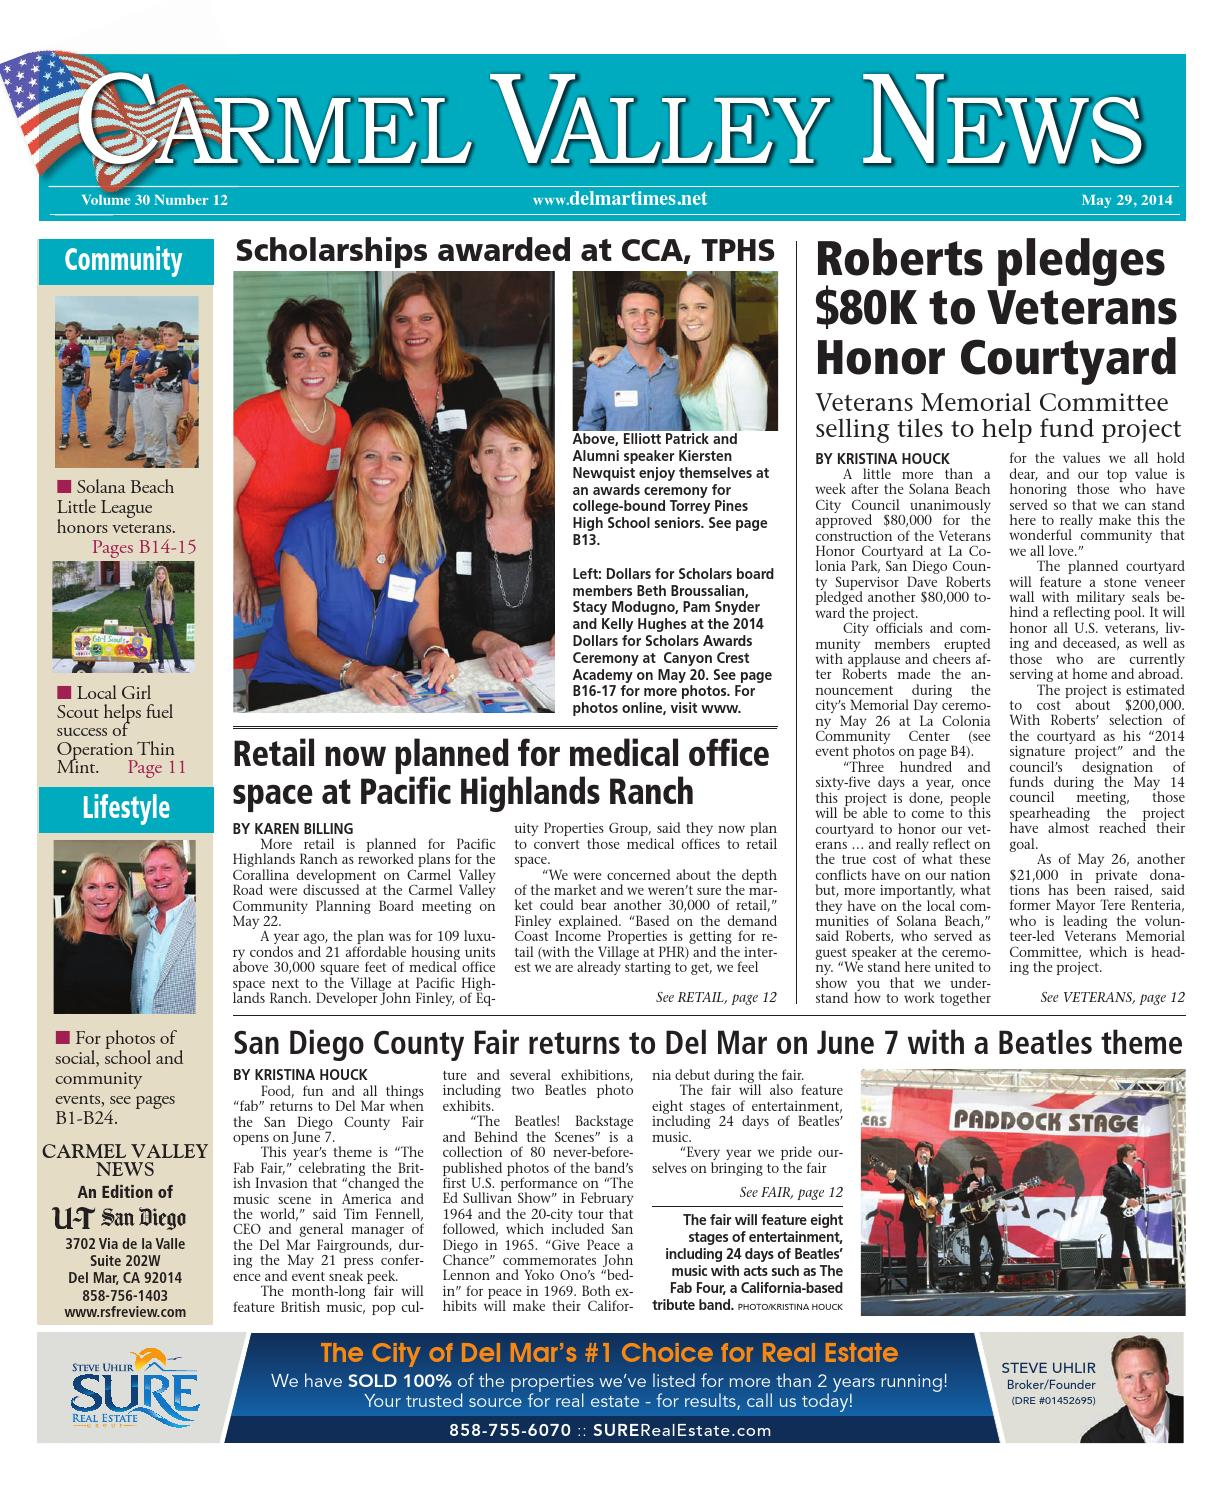 Carmel Valley News 5 29 14 By MainStreet Media